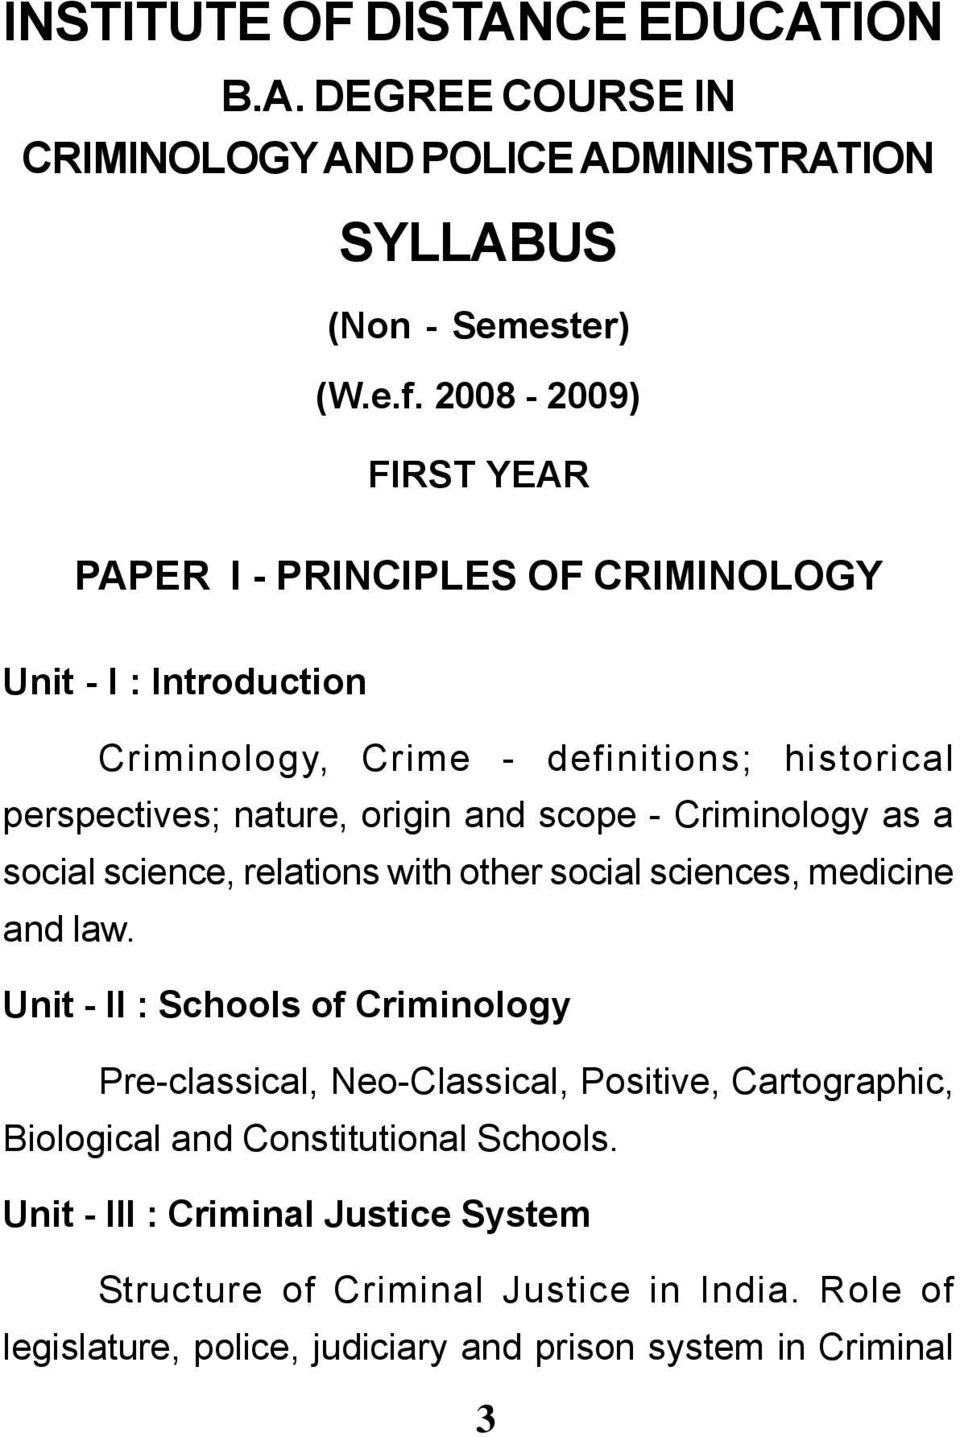 scope - Criminology as a social science, relations with other social  sciences, medicine and